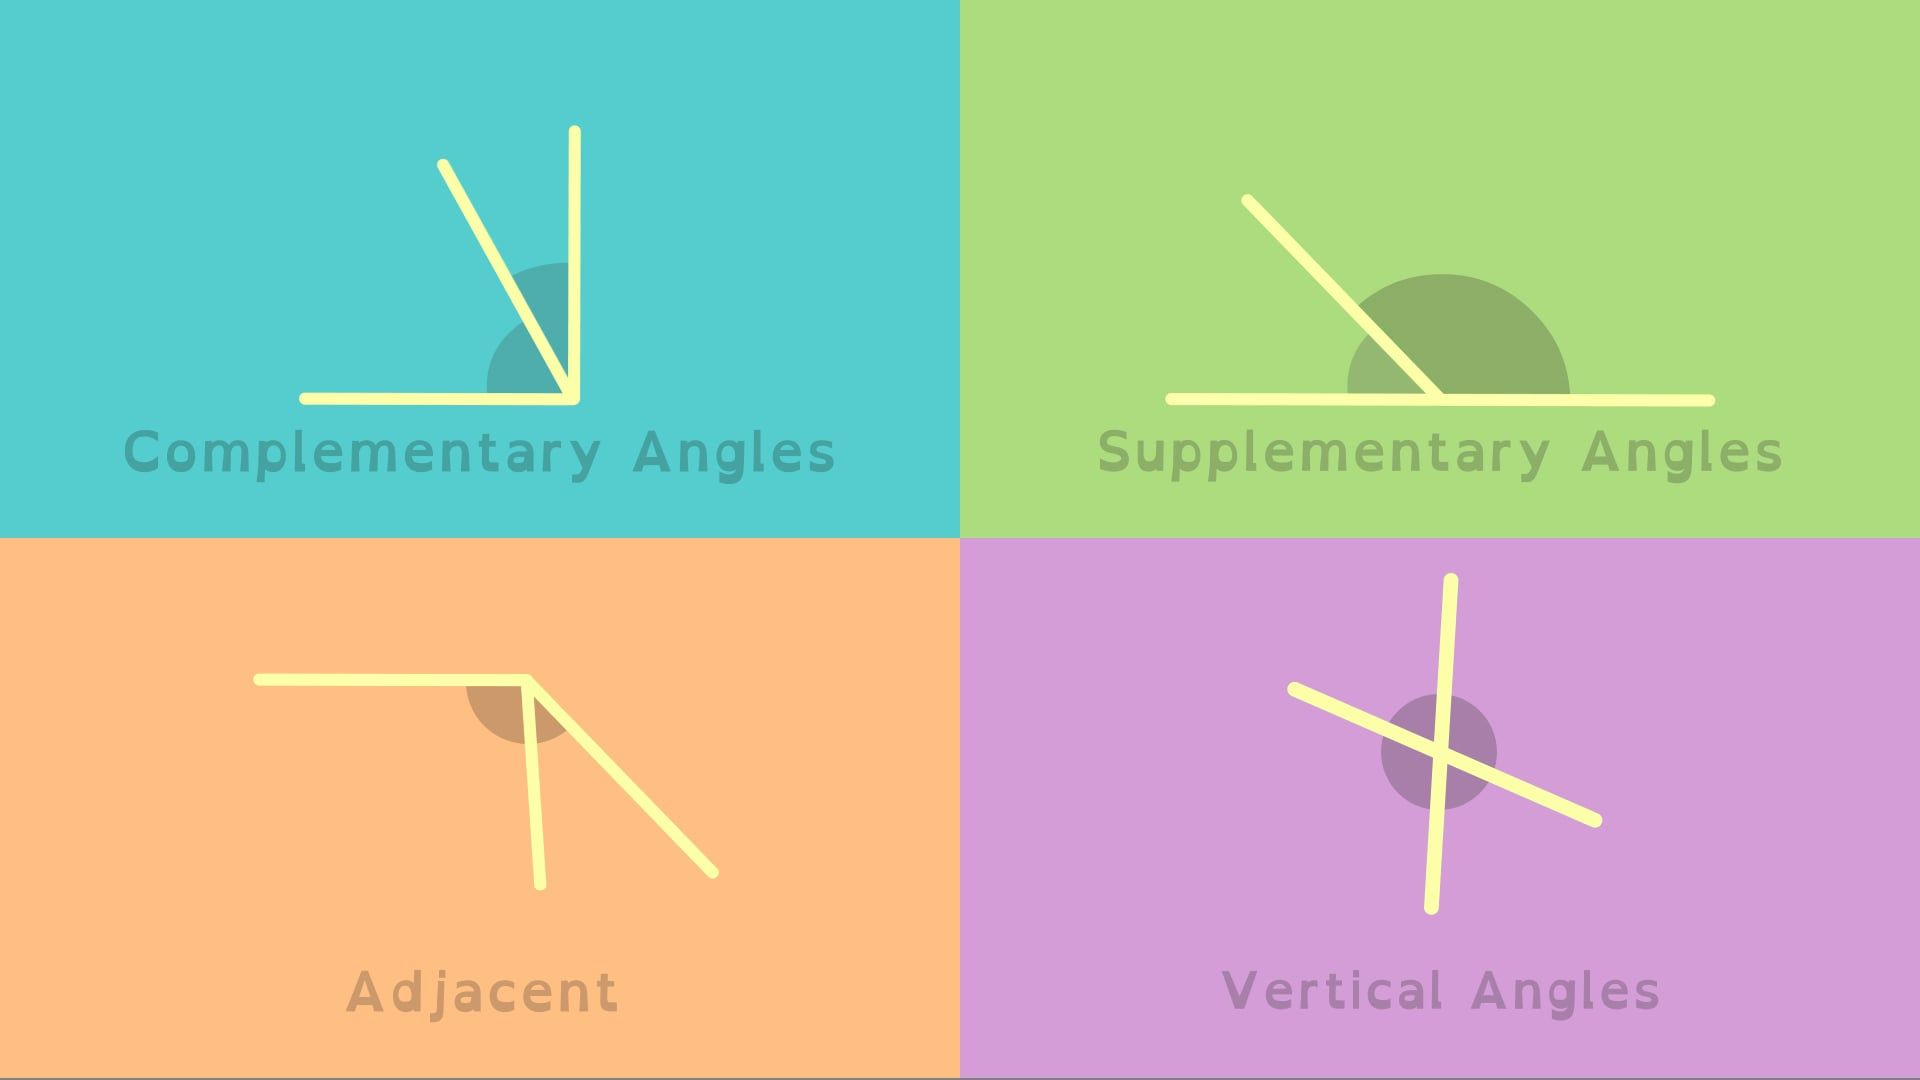 Adjacent And Supplementary Angles Worksheet